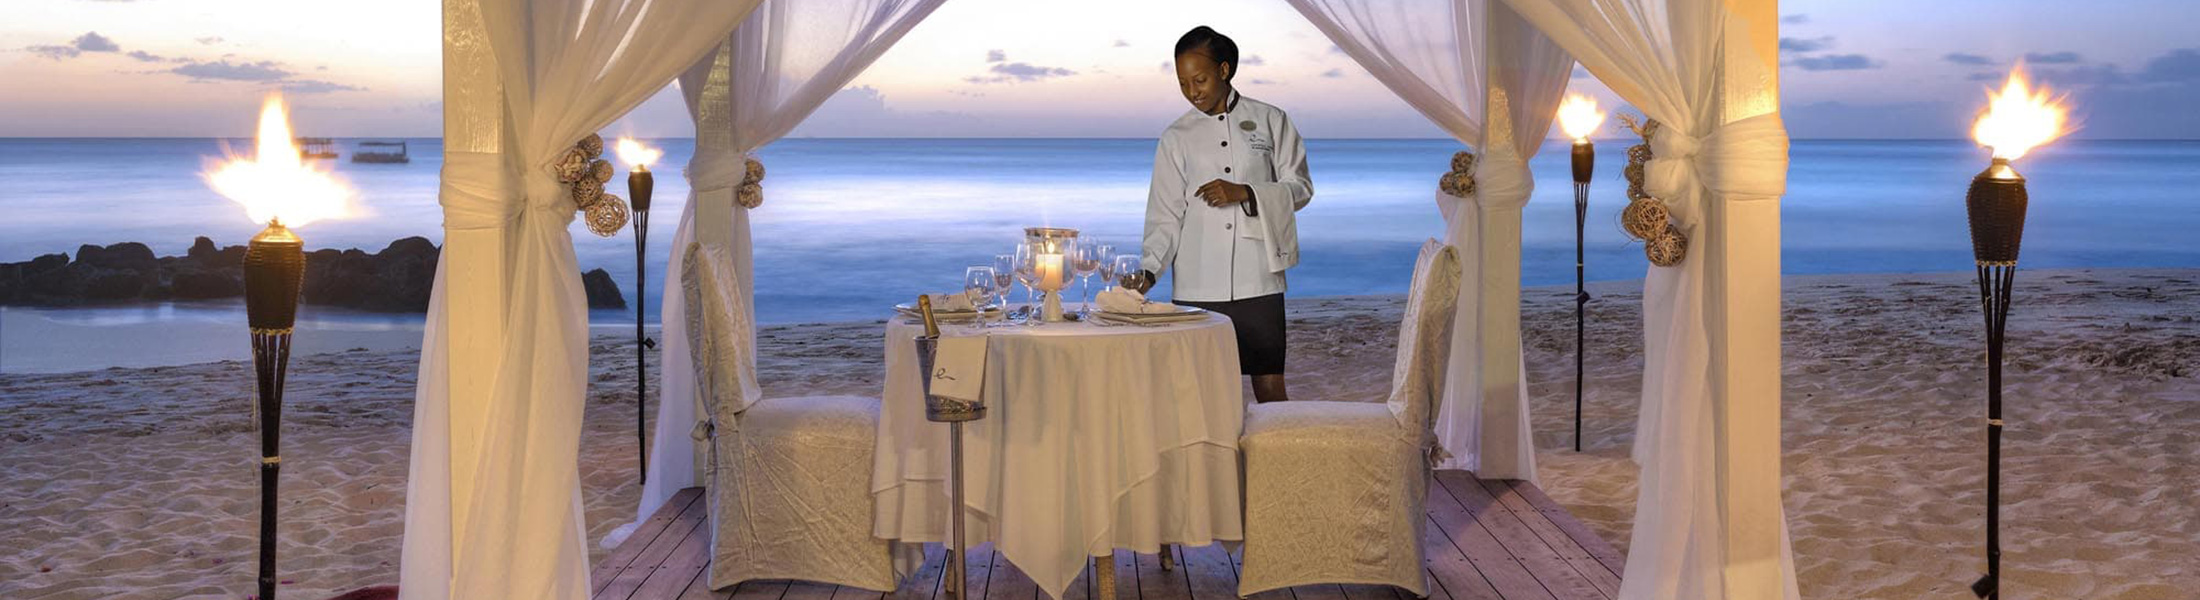 Private Dining on the beach at Crystal Cove by Elegant Hotels